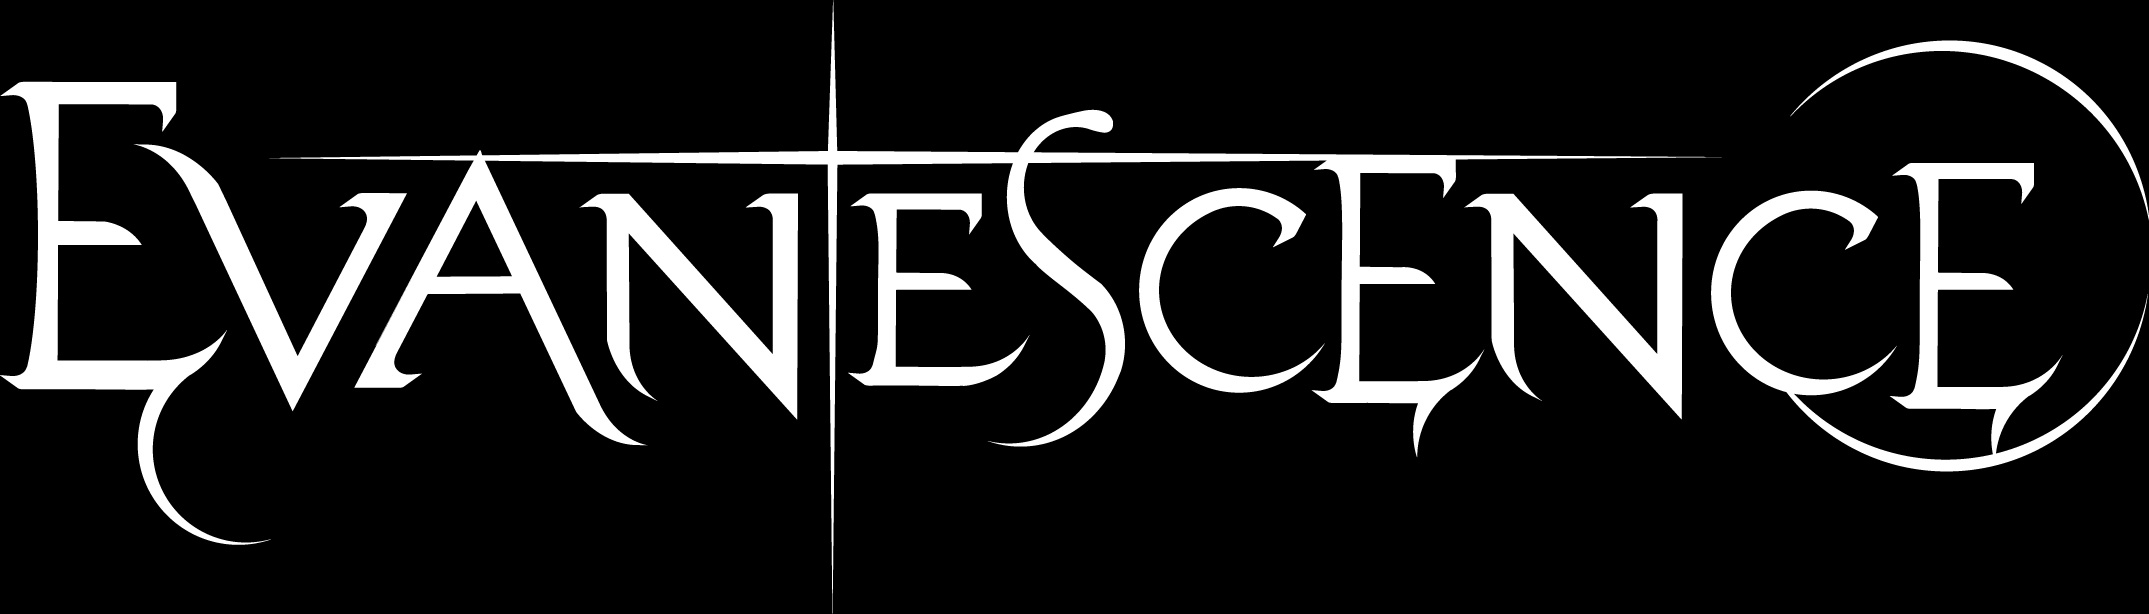 What Is The Font Of The Evanescence Logo Pic Included Yahoo